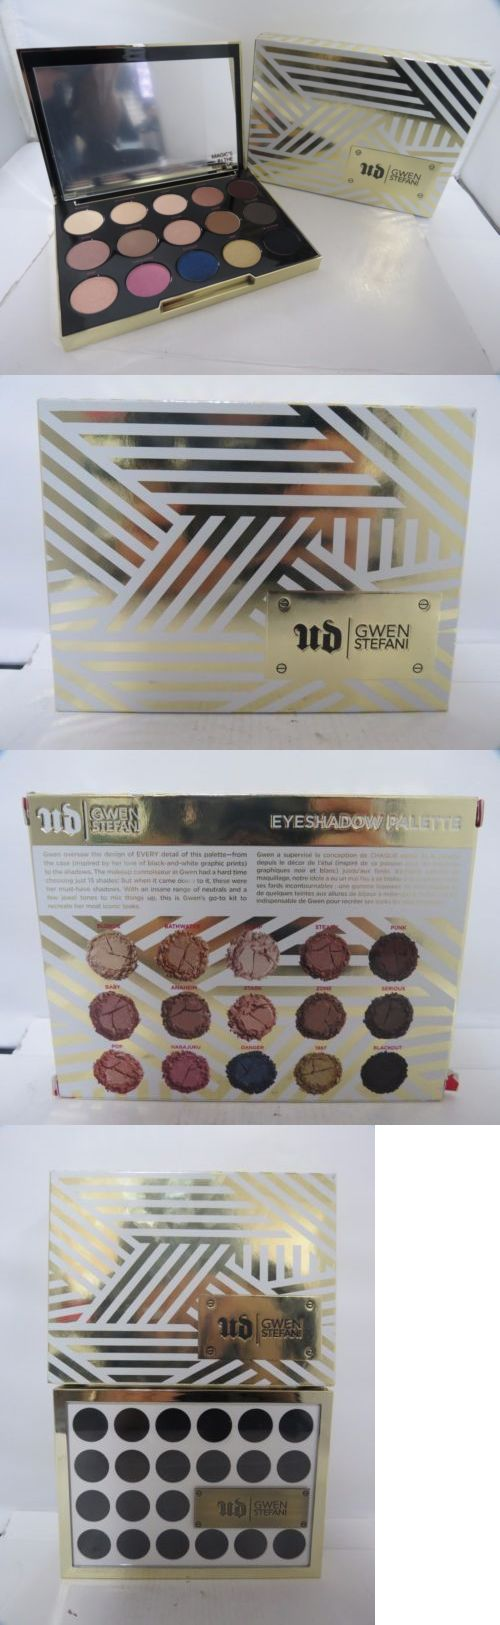 Makeup Sets and Kits: Urban Decay Gwen Stefani Eyeshadow Palette New In Box -> BUY IT NOW ONLY: $35.62 on eBay!